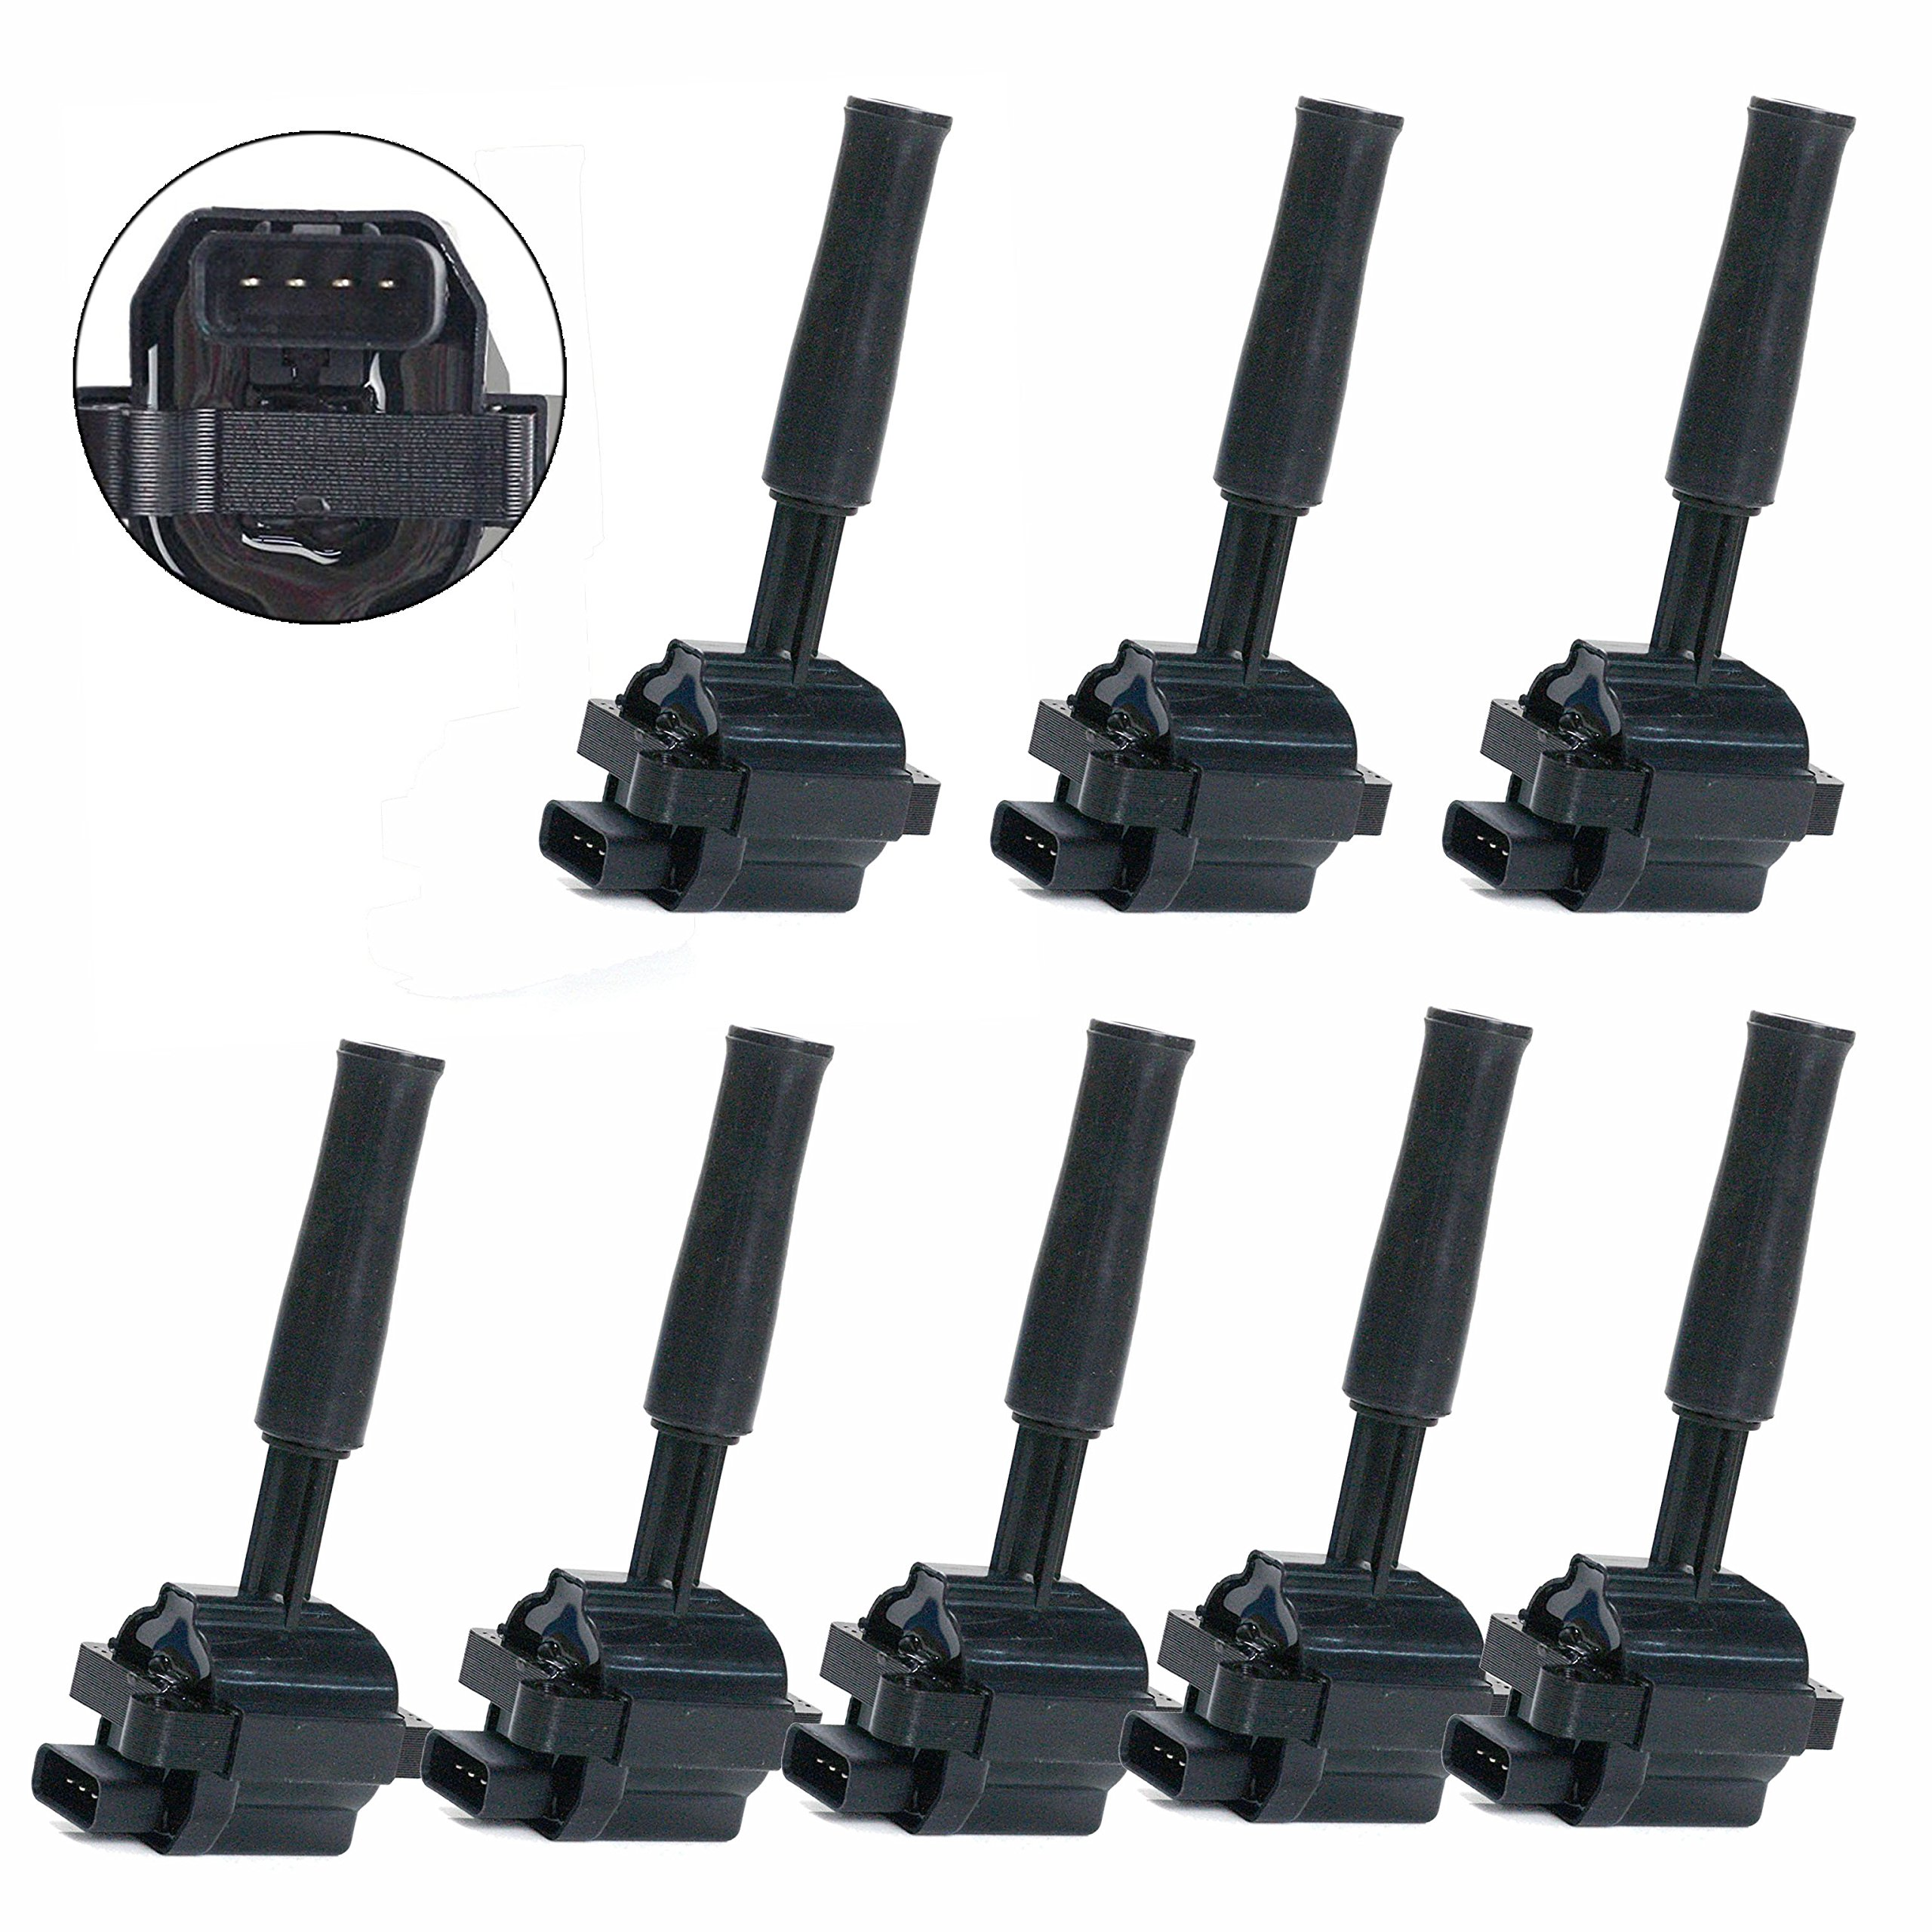 Carrep Ignition Spark Coil Coils For Jaguar Xj8 XJR XKR XK8 Vaden Plas 4.0L UF415 xw93-12029-ab (8 PACK) by Carrep